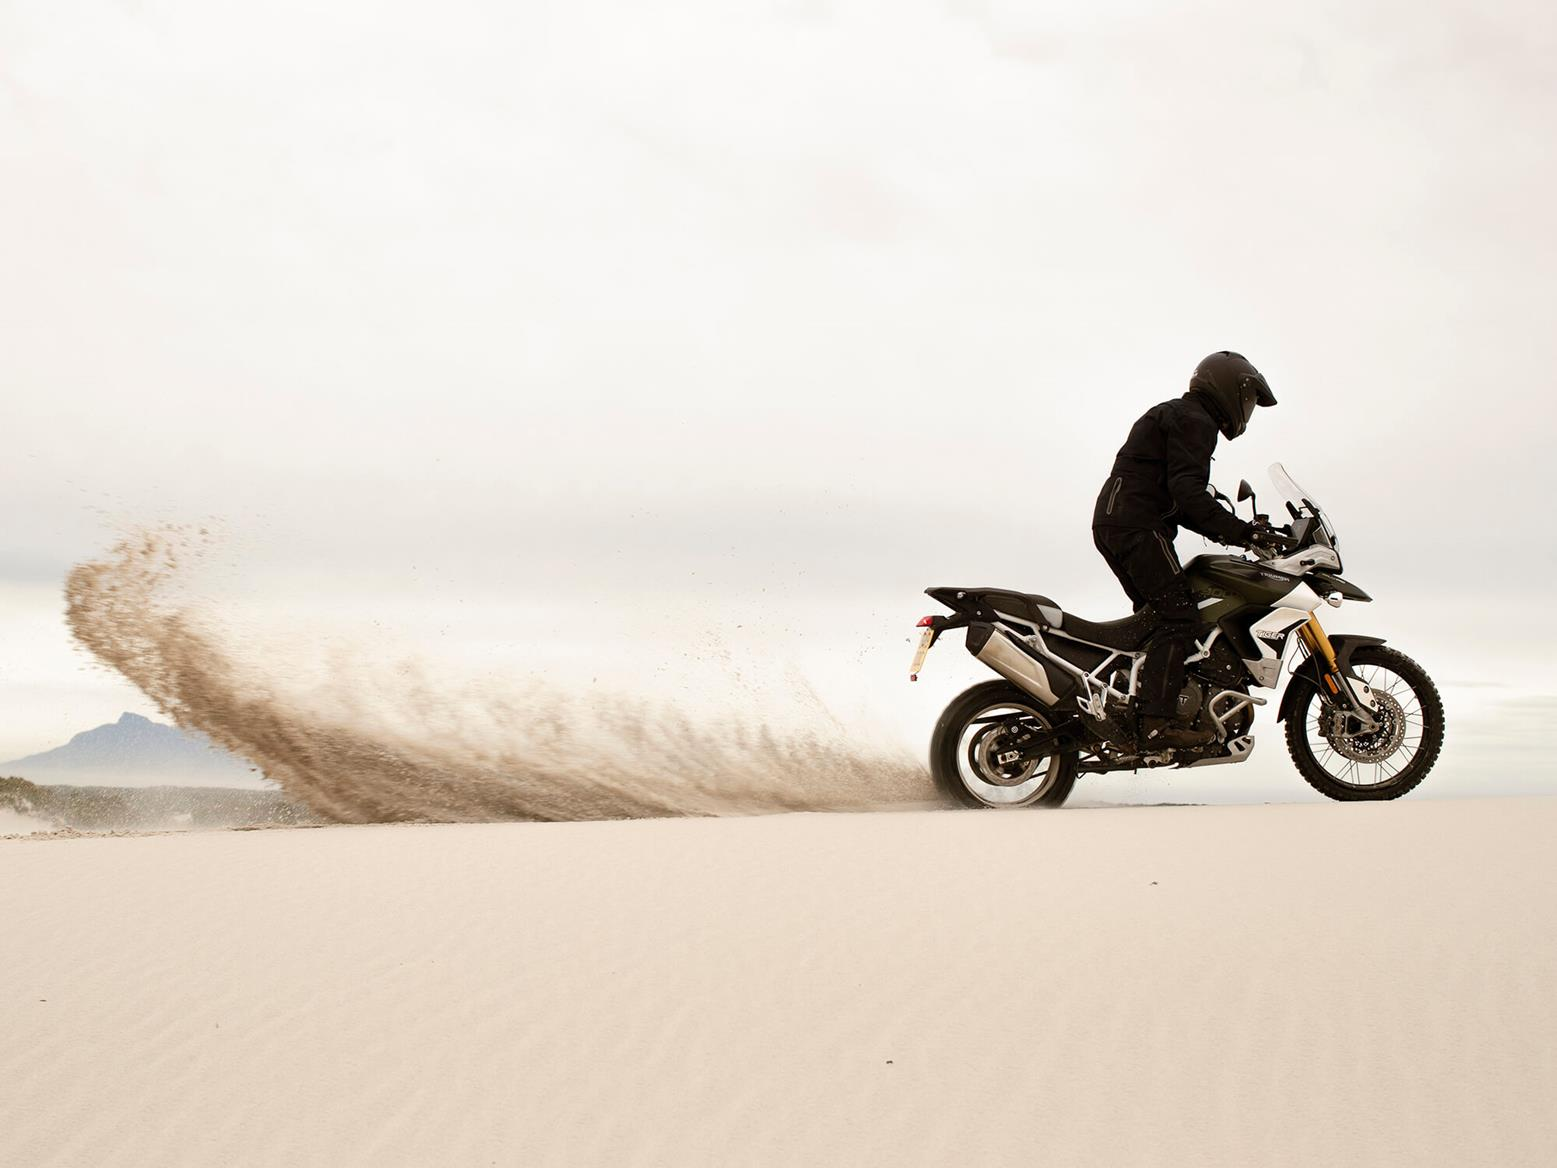 Rooster tail in the desert on the 2020 Triumph Tiger 900